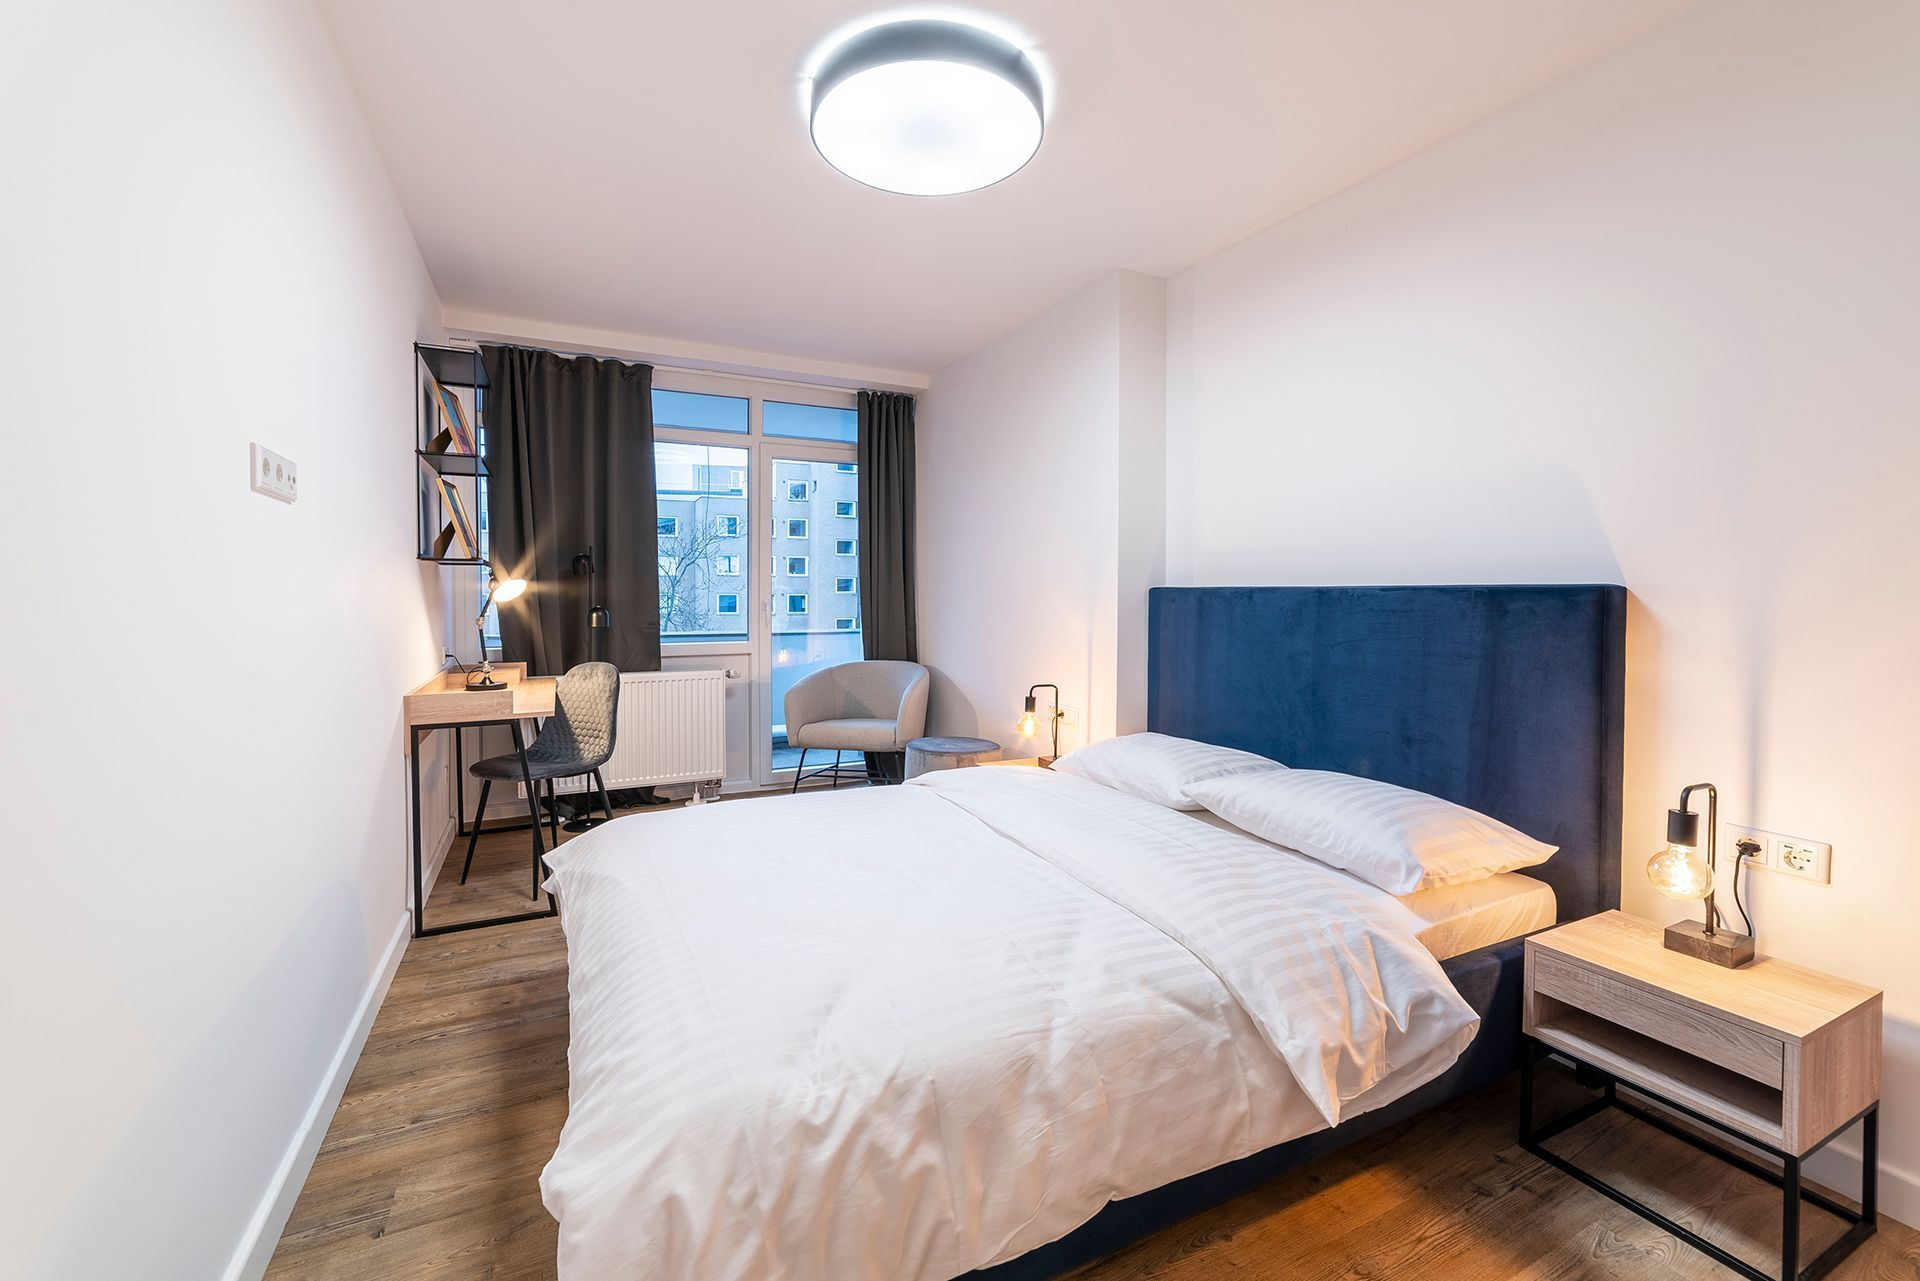 Private Room - Medium apartment to rent in Berlin BILE-B104-6055-1